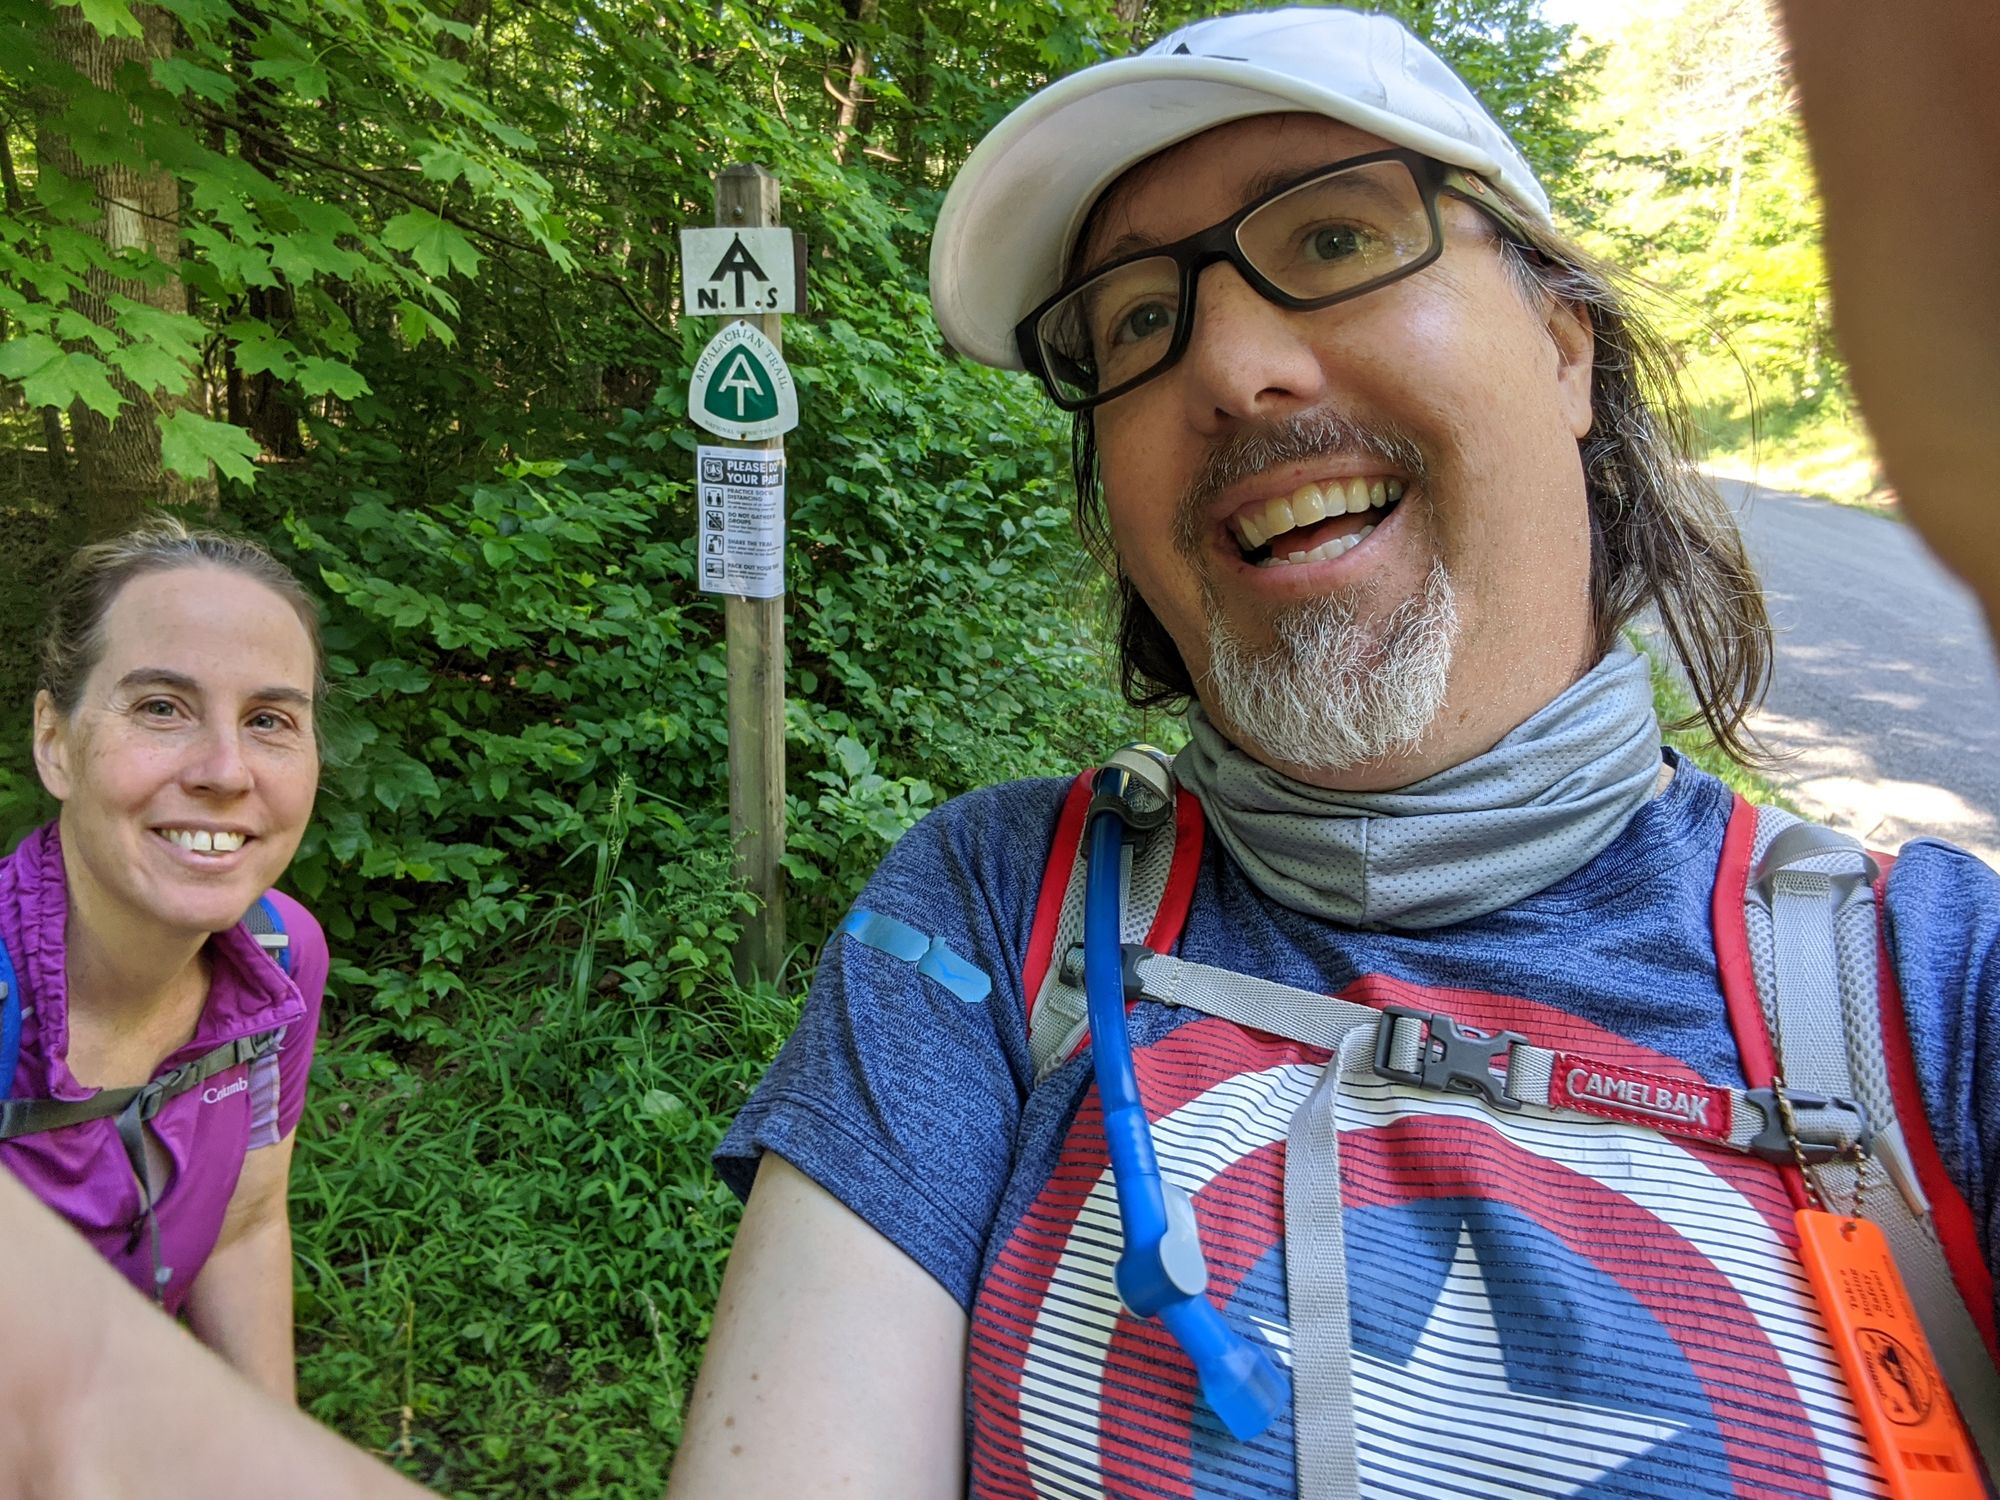 Hiking the Roanoke Valley AT in 14 Parts: Part 2